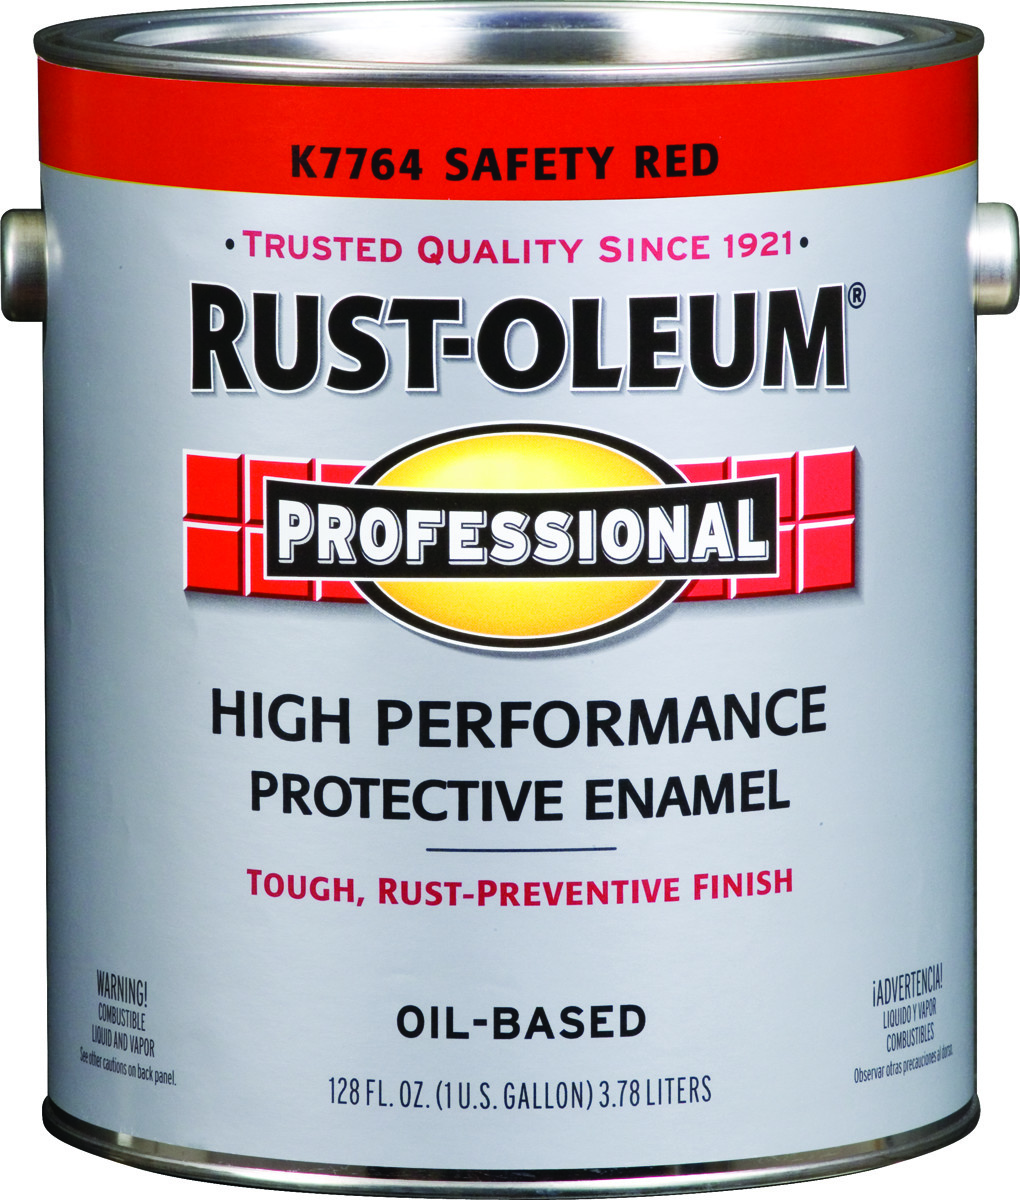 Rust Oleum K7764402 Professional Safety Red Direct To Metal Gallon 400 Voc Alkyd Enamel